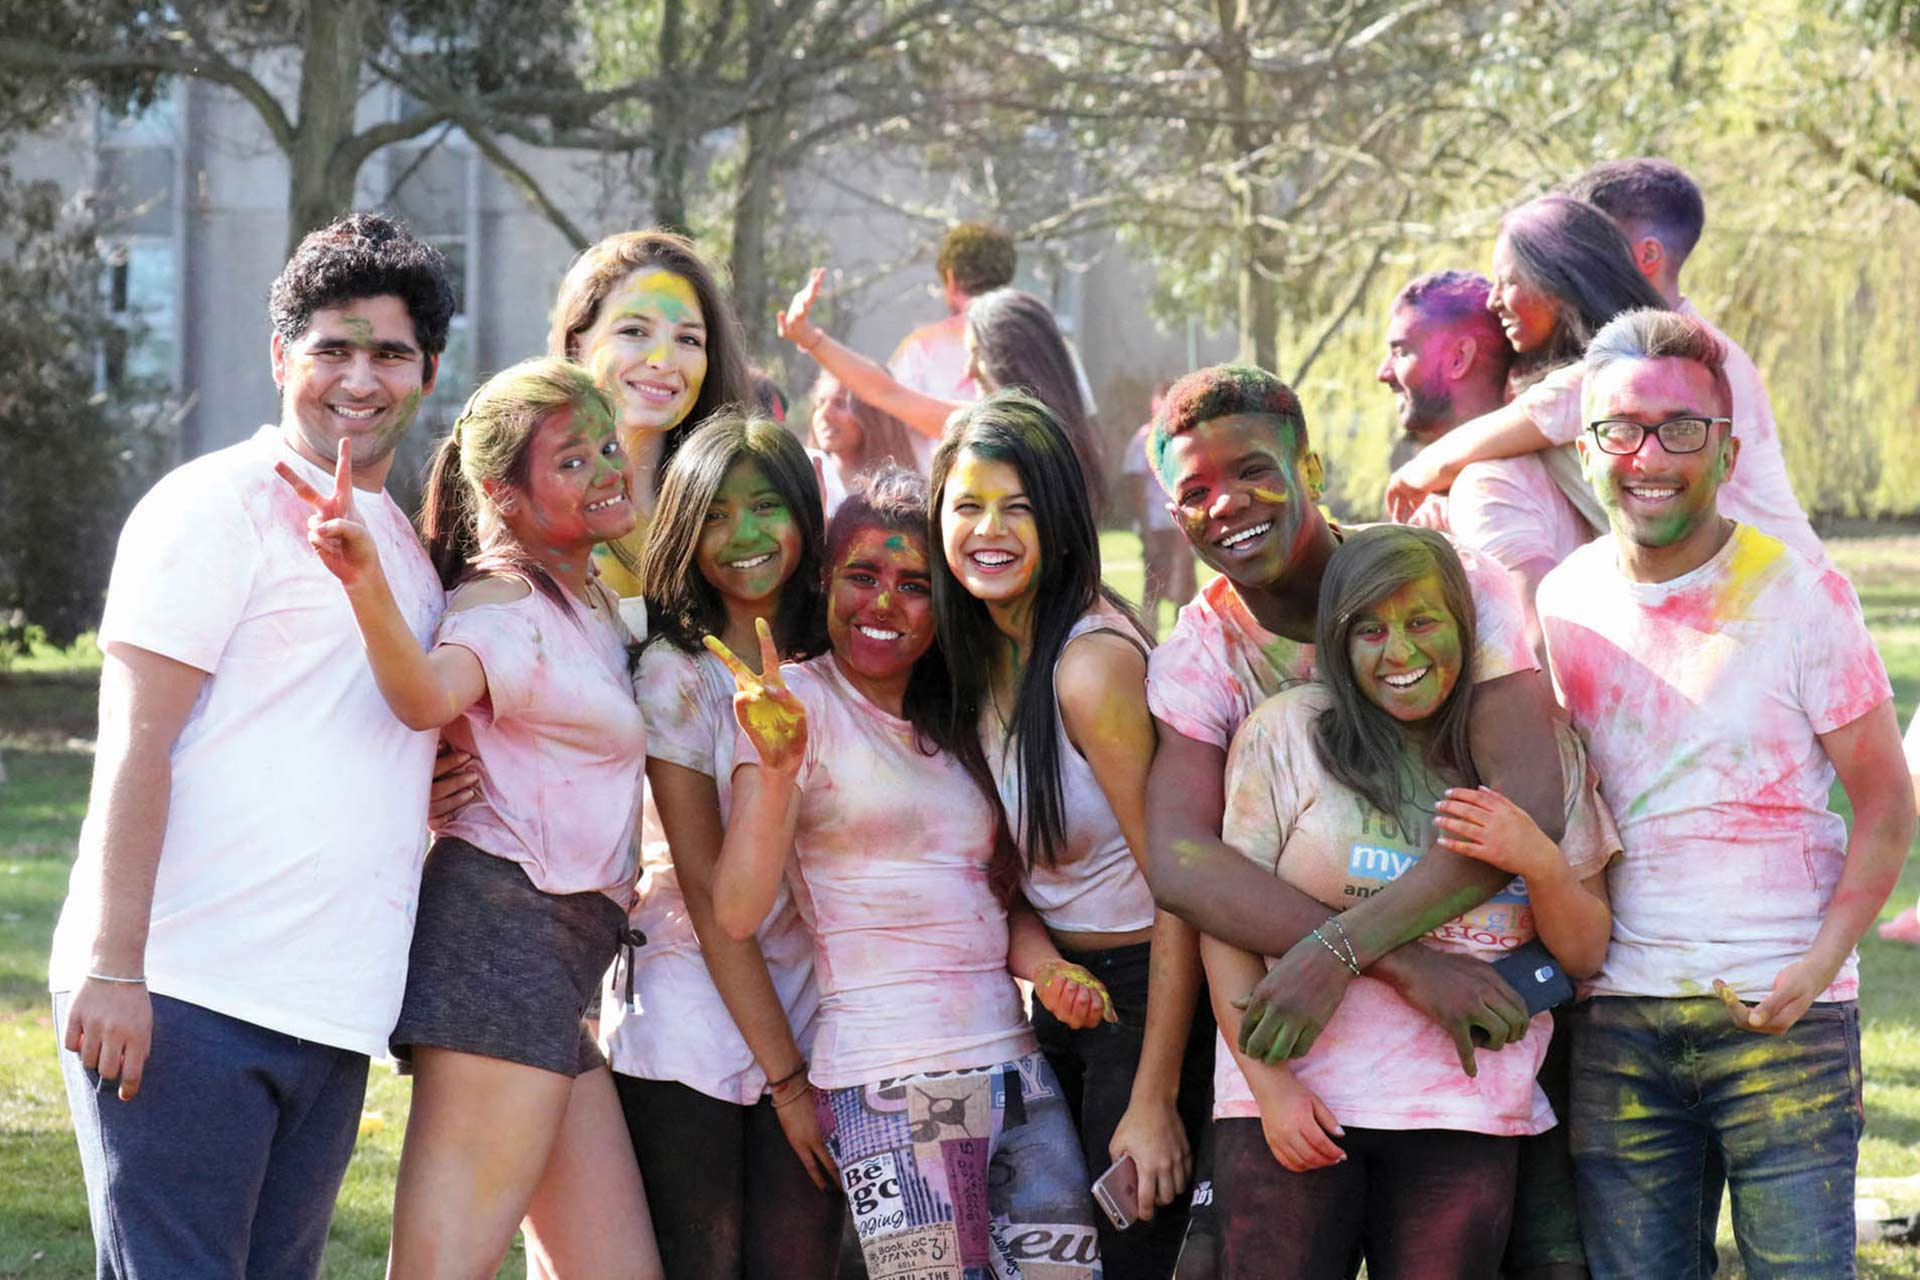 Paint-covered smiling students celebrating Holi